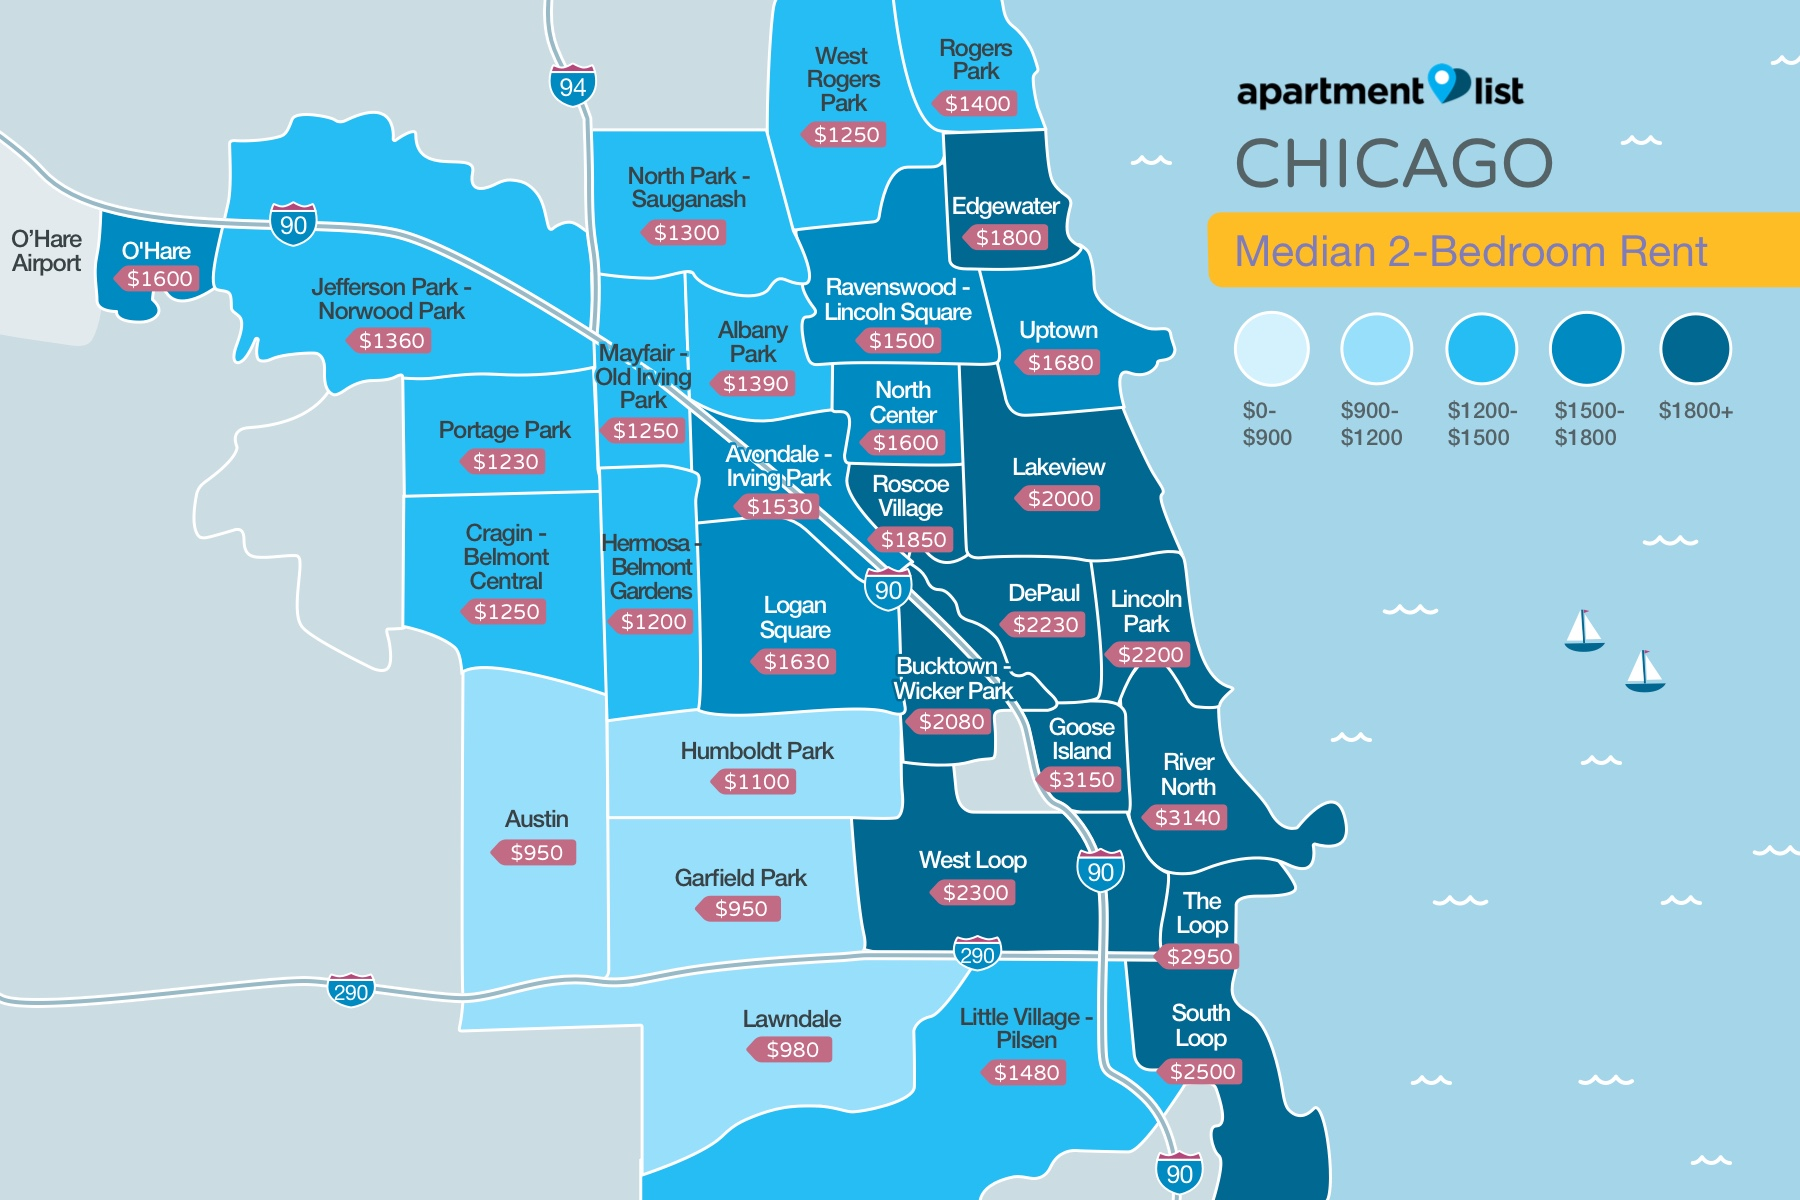 Apartments For Rent In Chicago Little Village Area